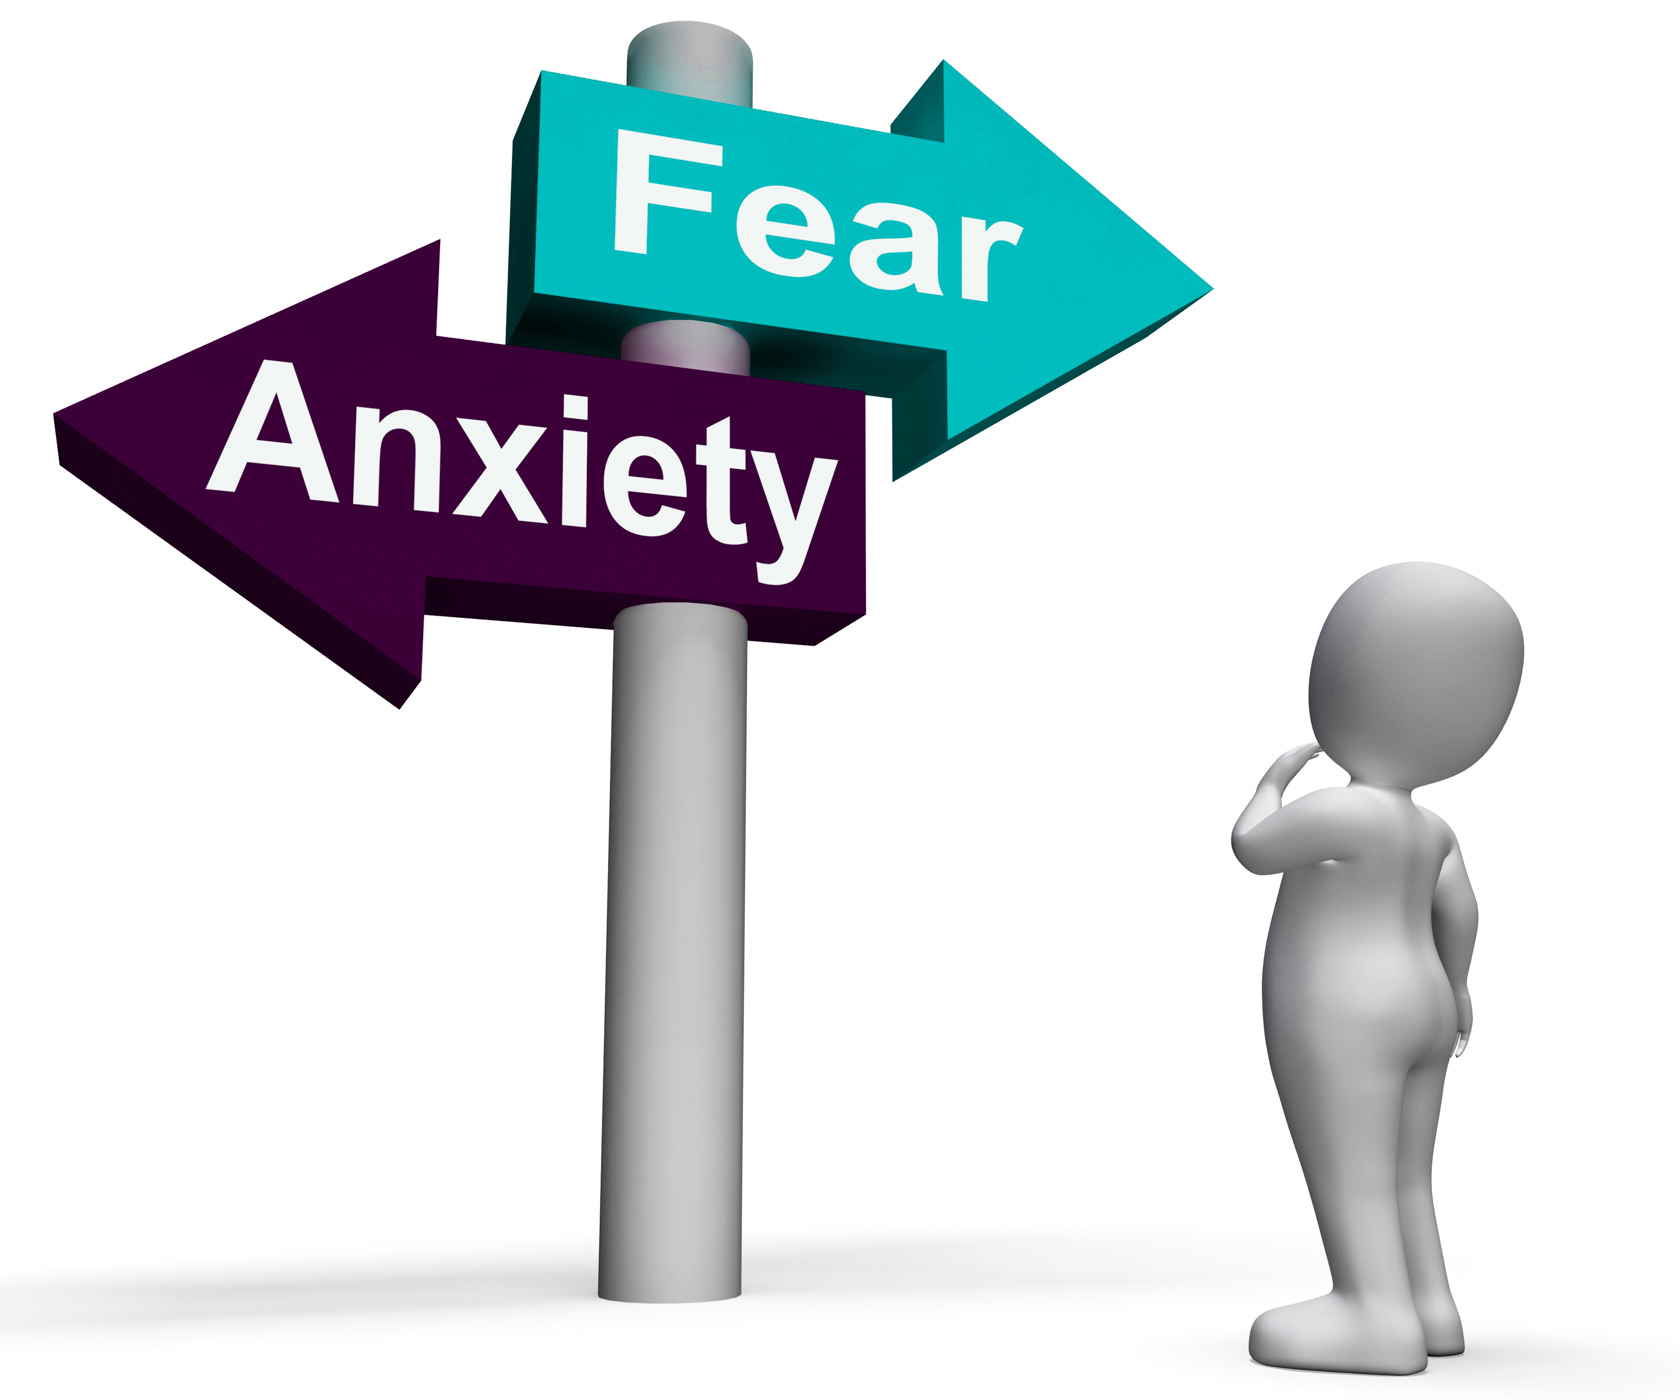 Fear Anxiety Signpost Shows Fears And Panic, Panic, Nervous, Panicked, Nerves, HQ Photo